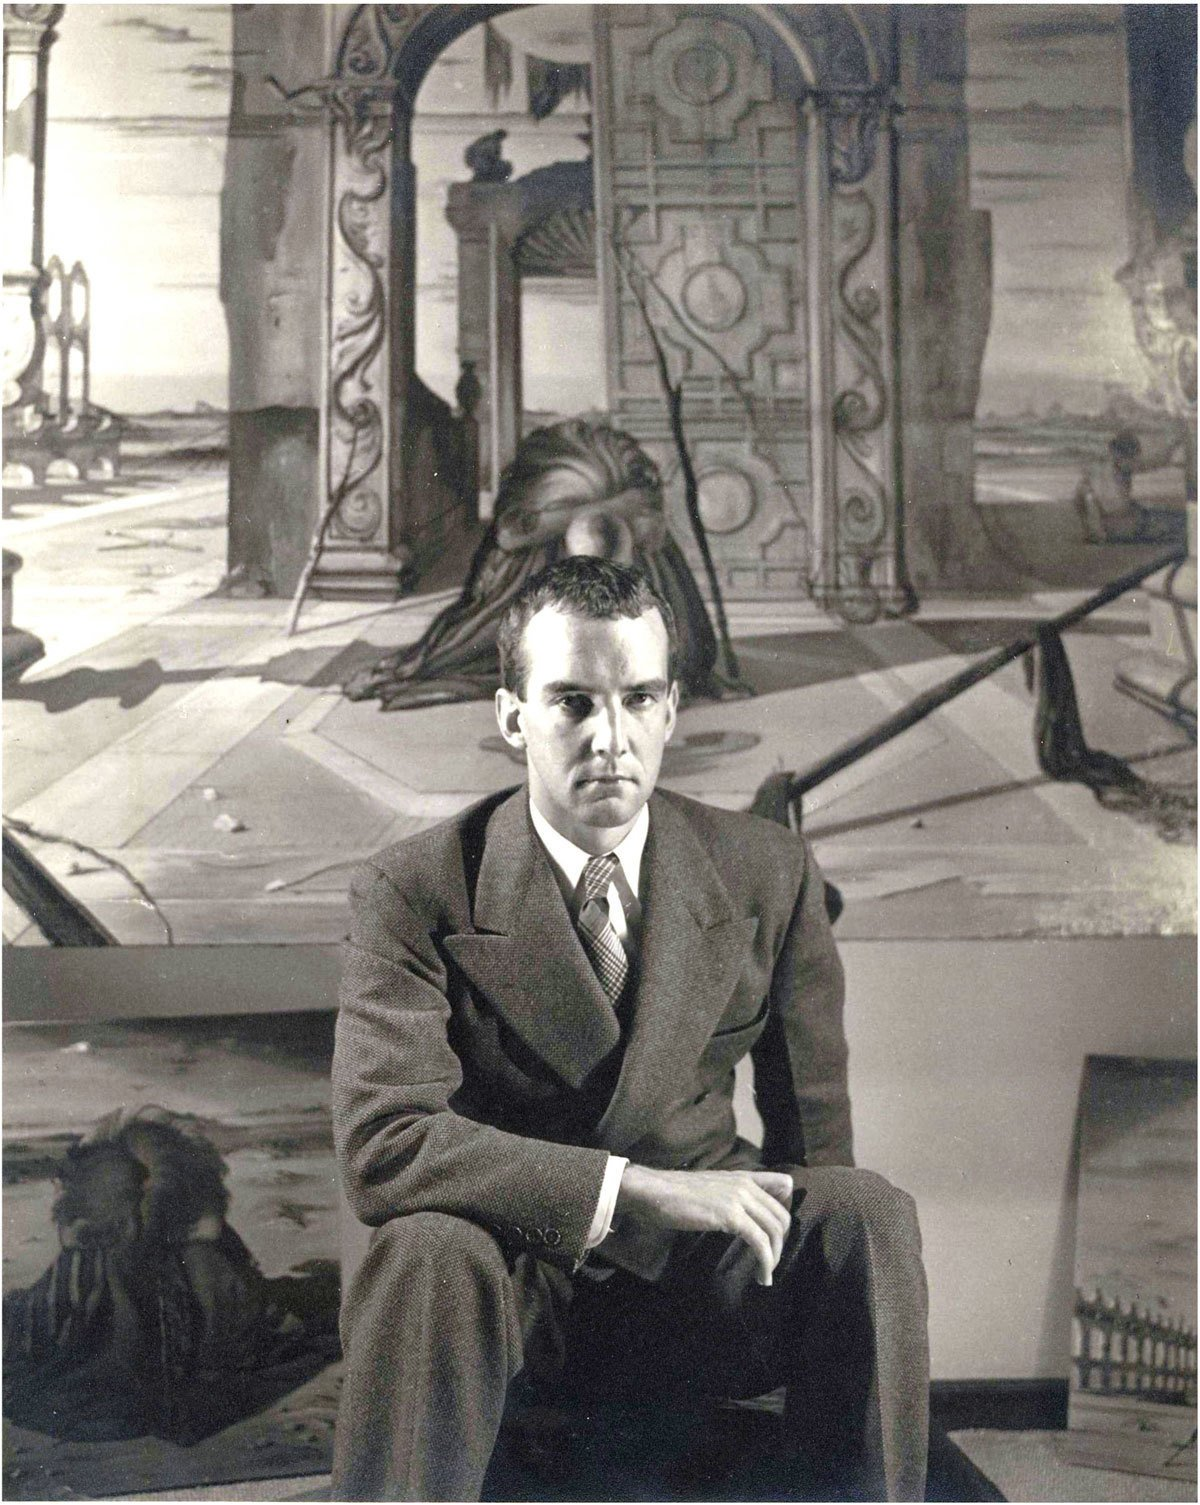 John Yeon photographed in 1941 at the Julien Levy Gallery in New York, seated in front of Eugene Berman's painting  Photo 15 of 15 in Spotlight on John Yeon, the Father of Northwest Regional Architecture